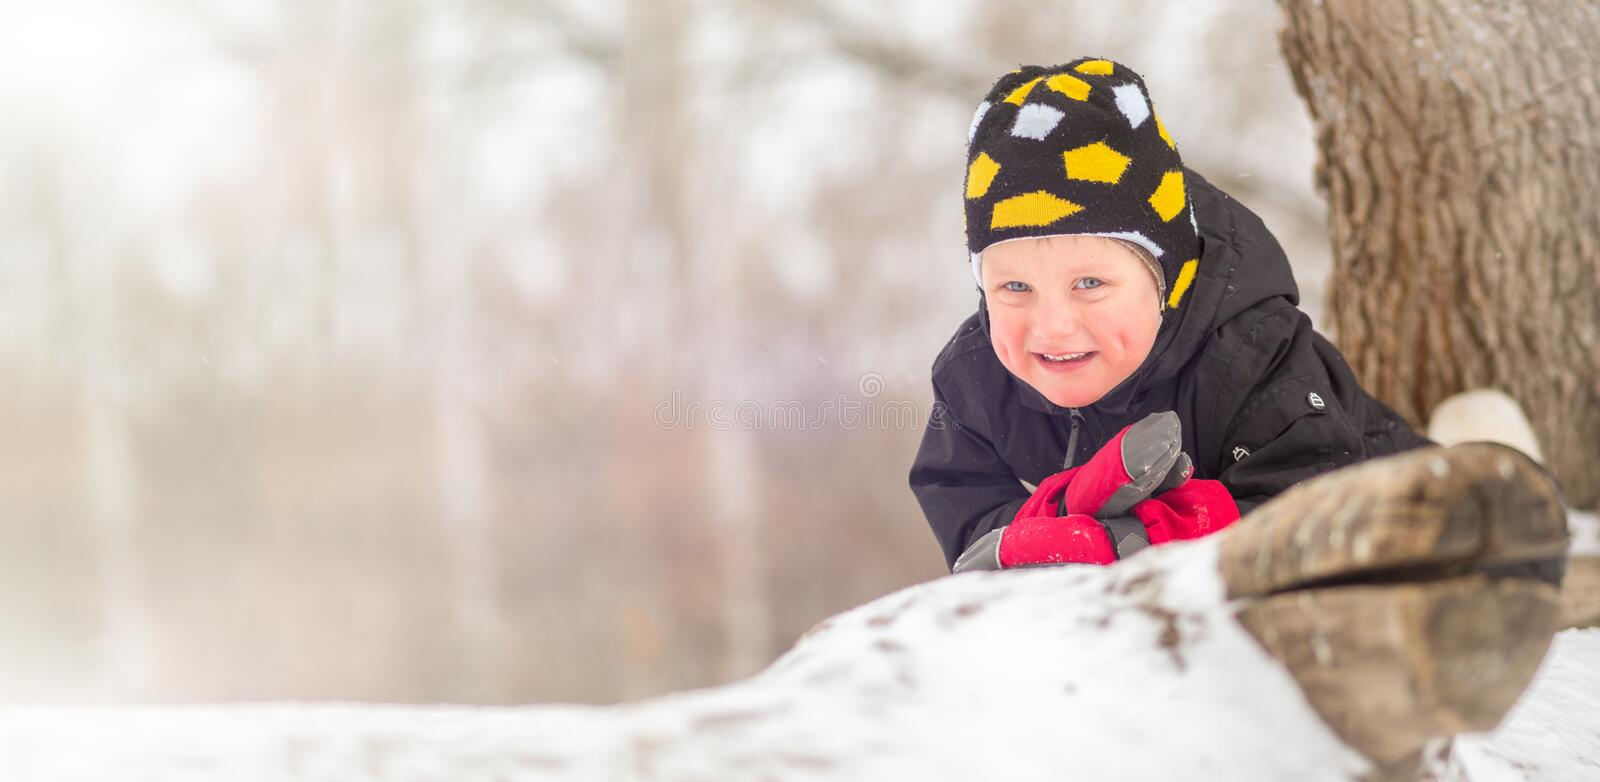 Little boy lying on the snow in winter royalty free stock photos